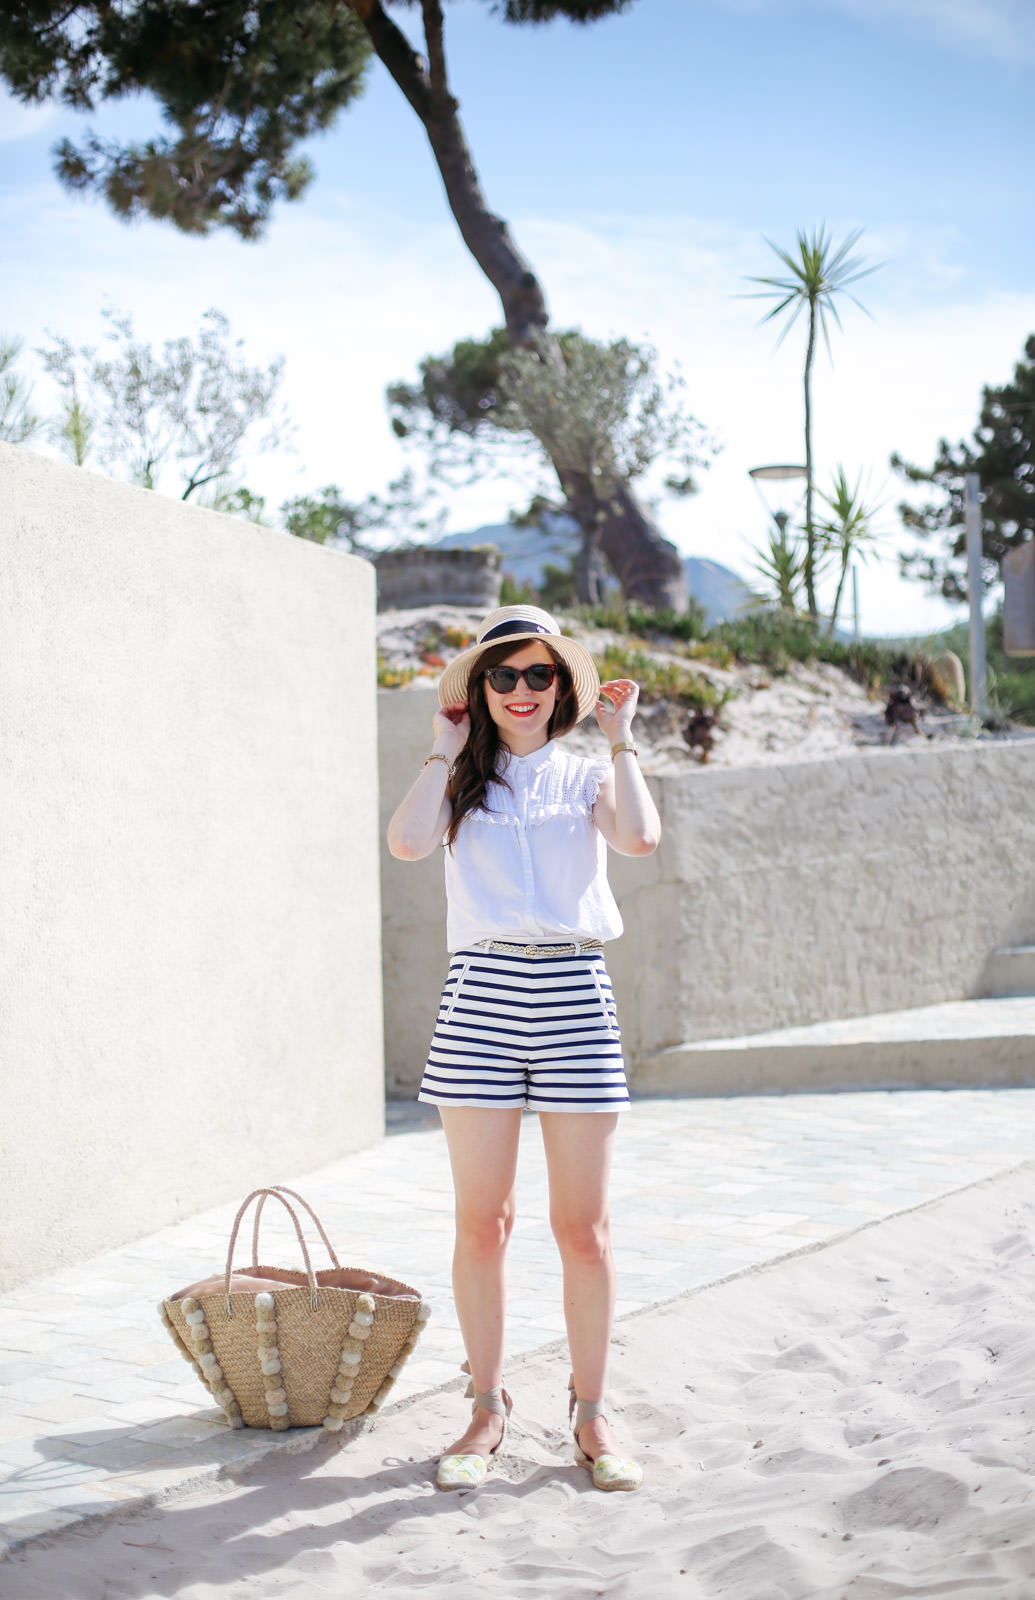 Blog-Mode-And-The-City-Looks-Les-Pieds-Dans-Le-Sable-A-Calvi